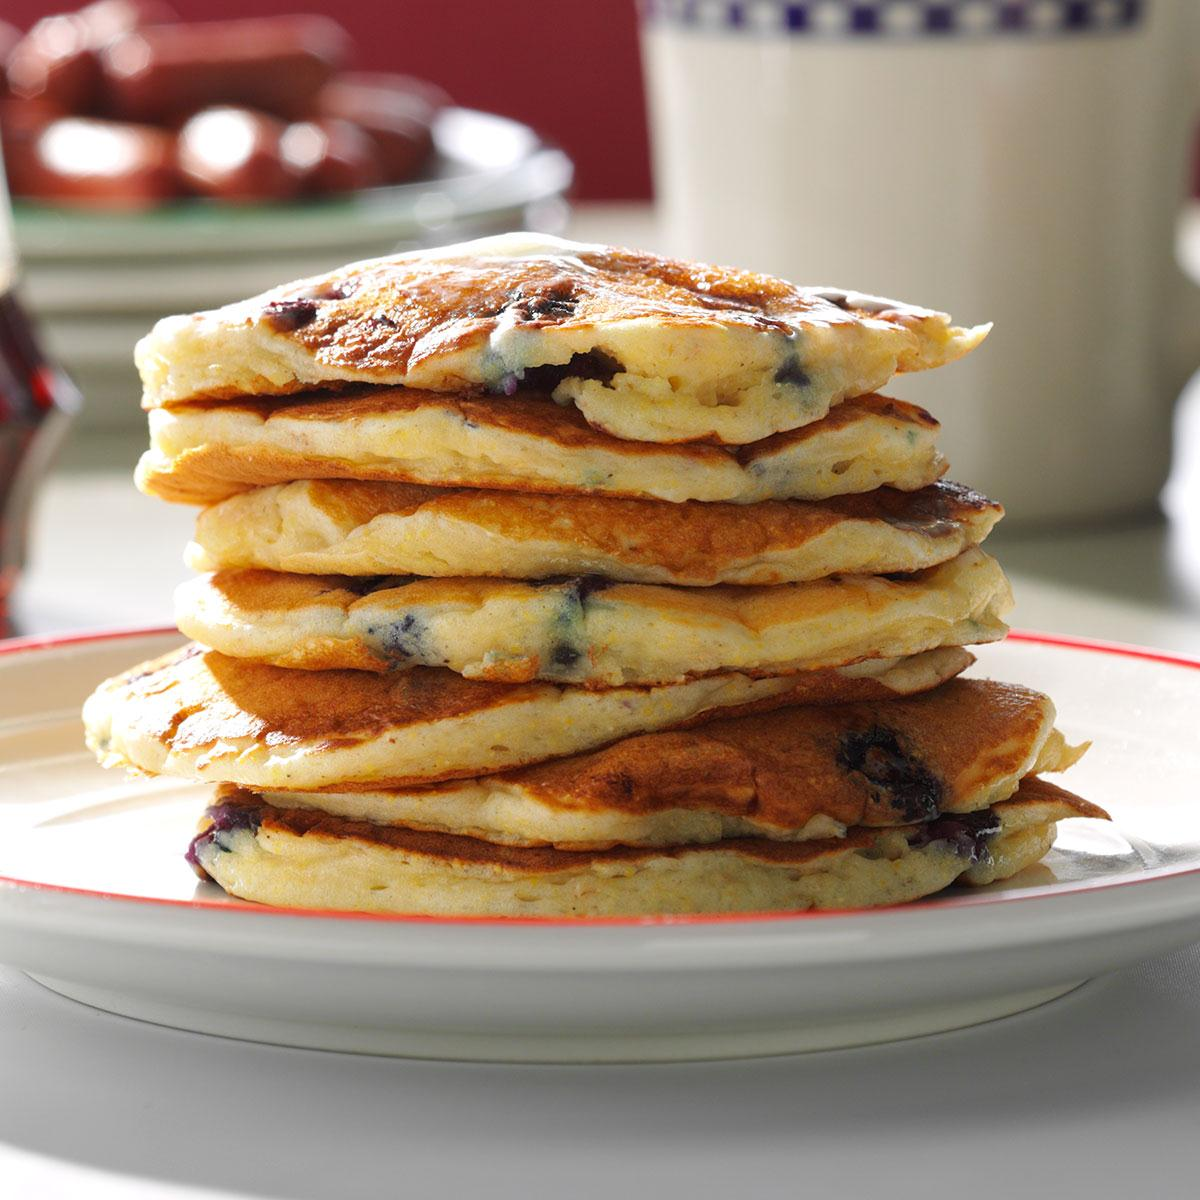 Dads blueberry buttermilk pancakes recipe taste of home ccuart Gallery